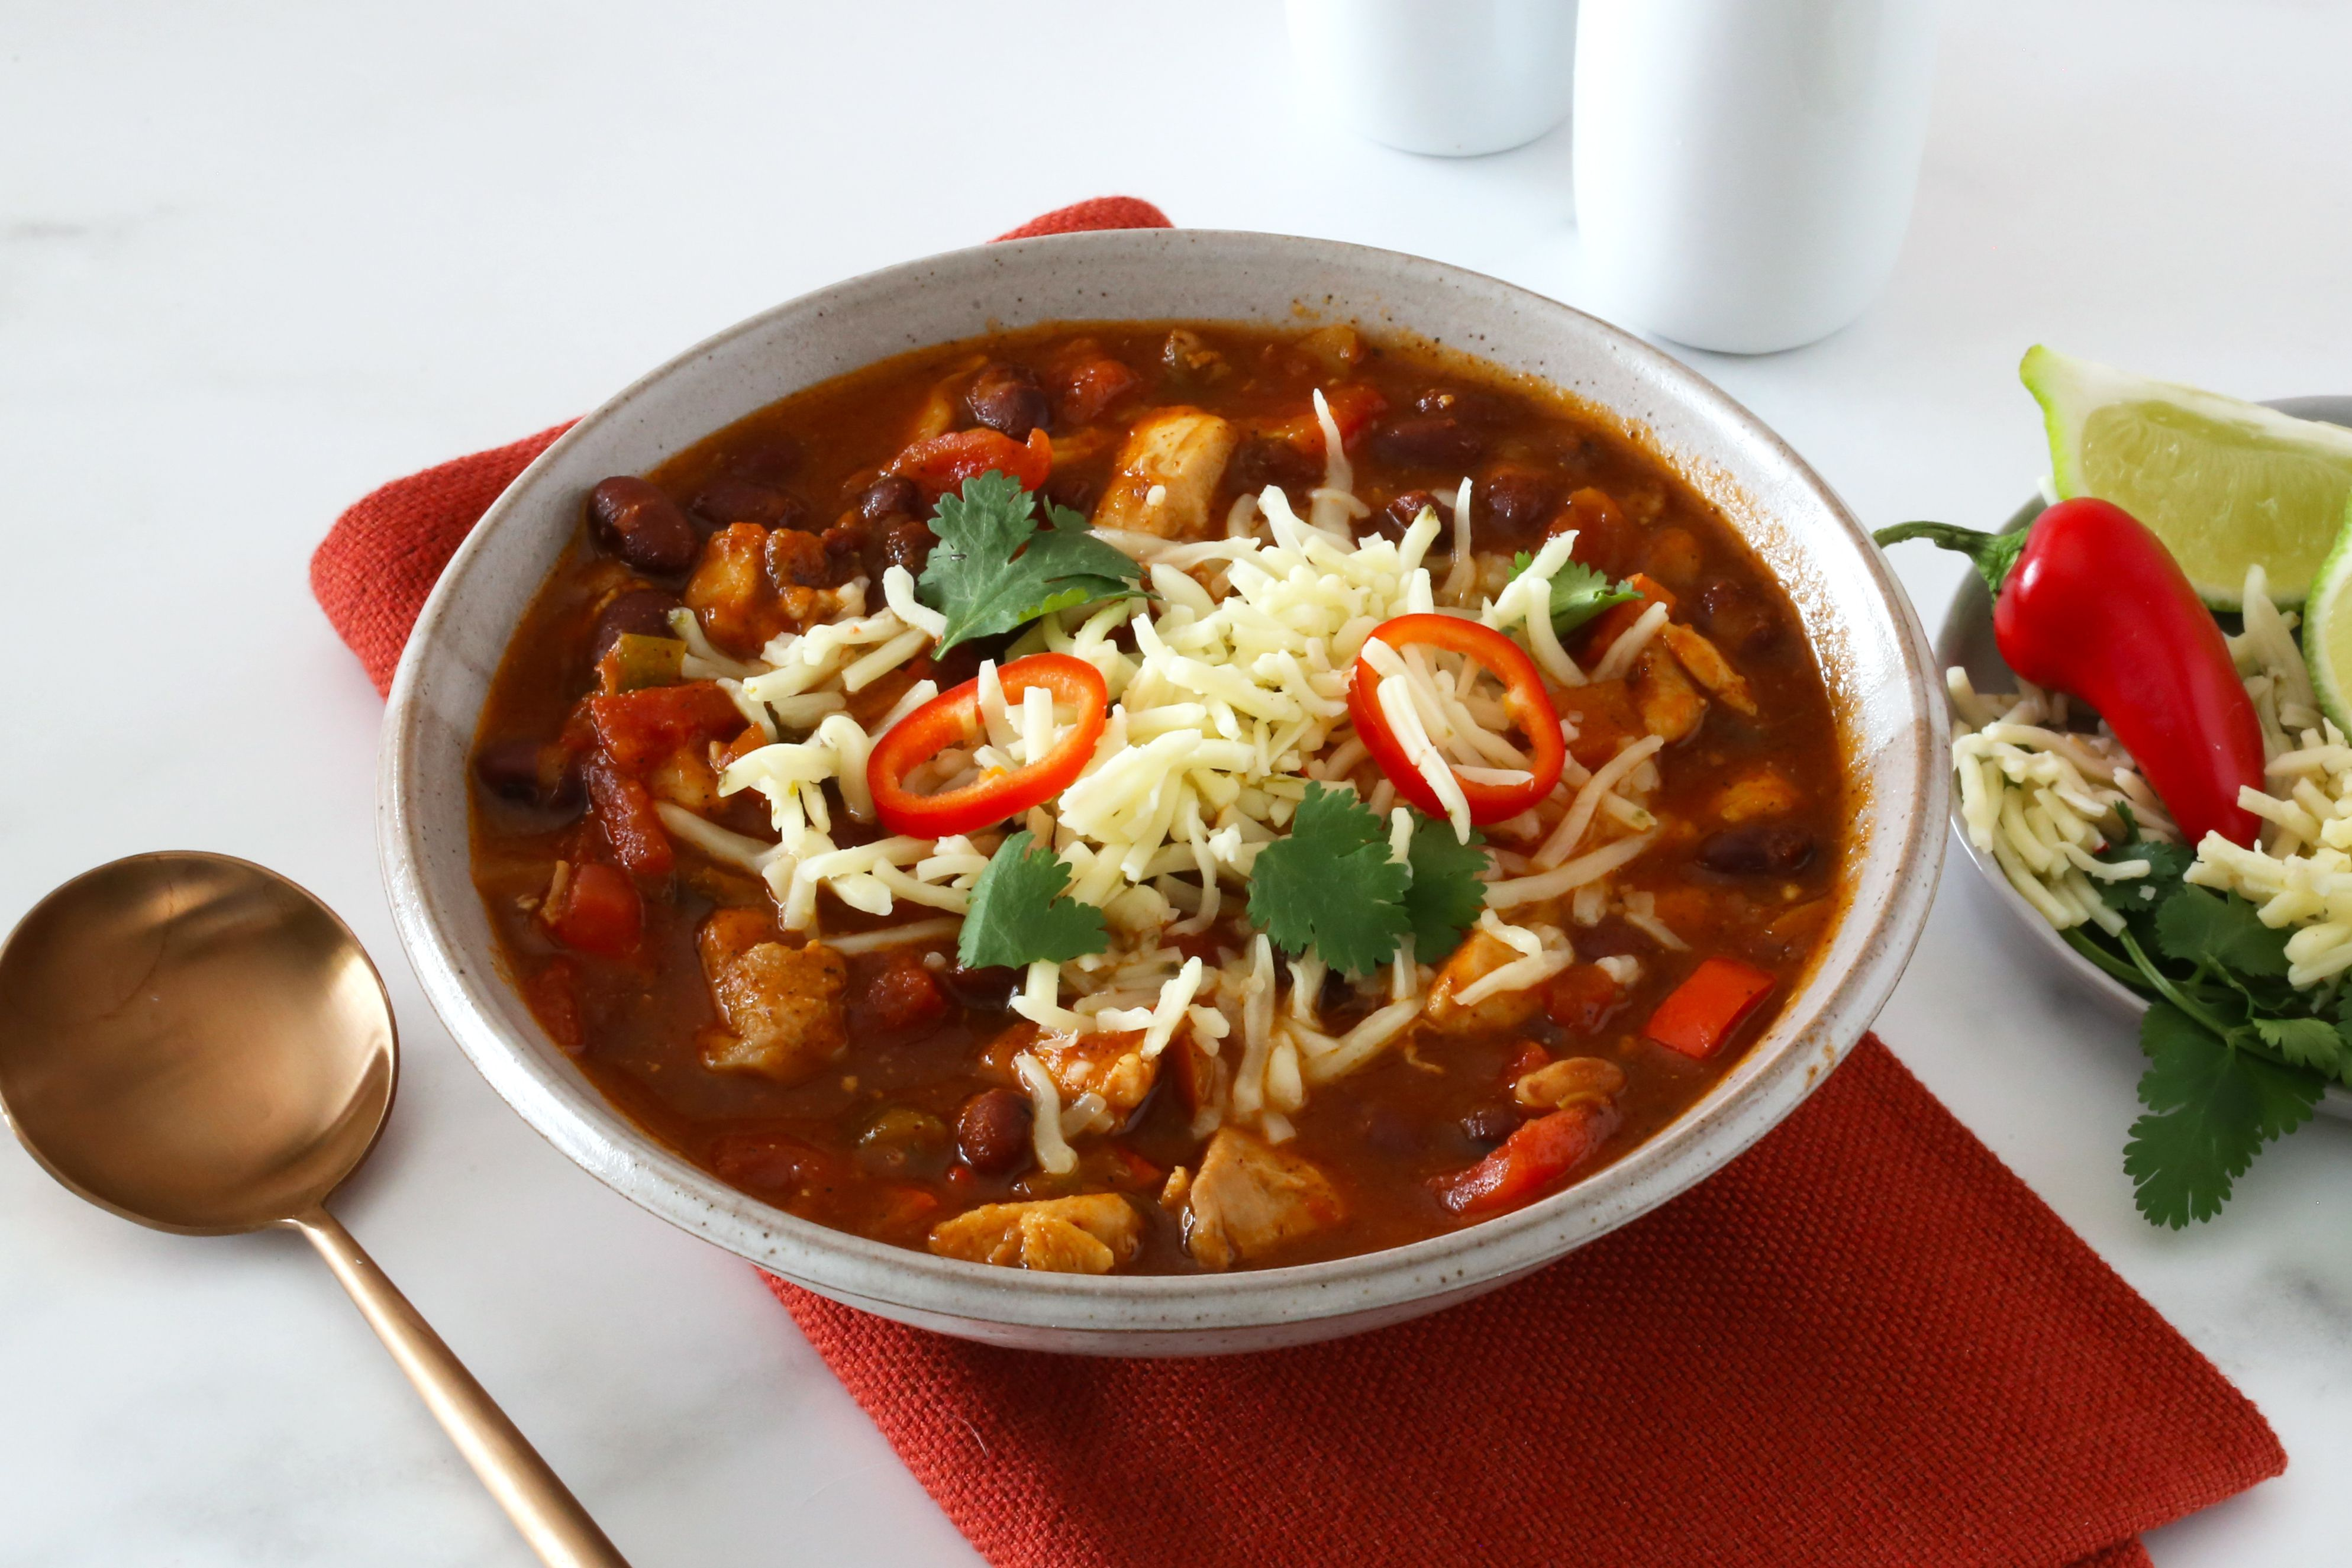 Chicken chili with red beans.